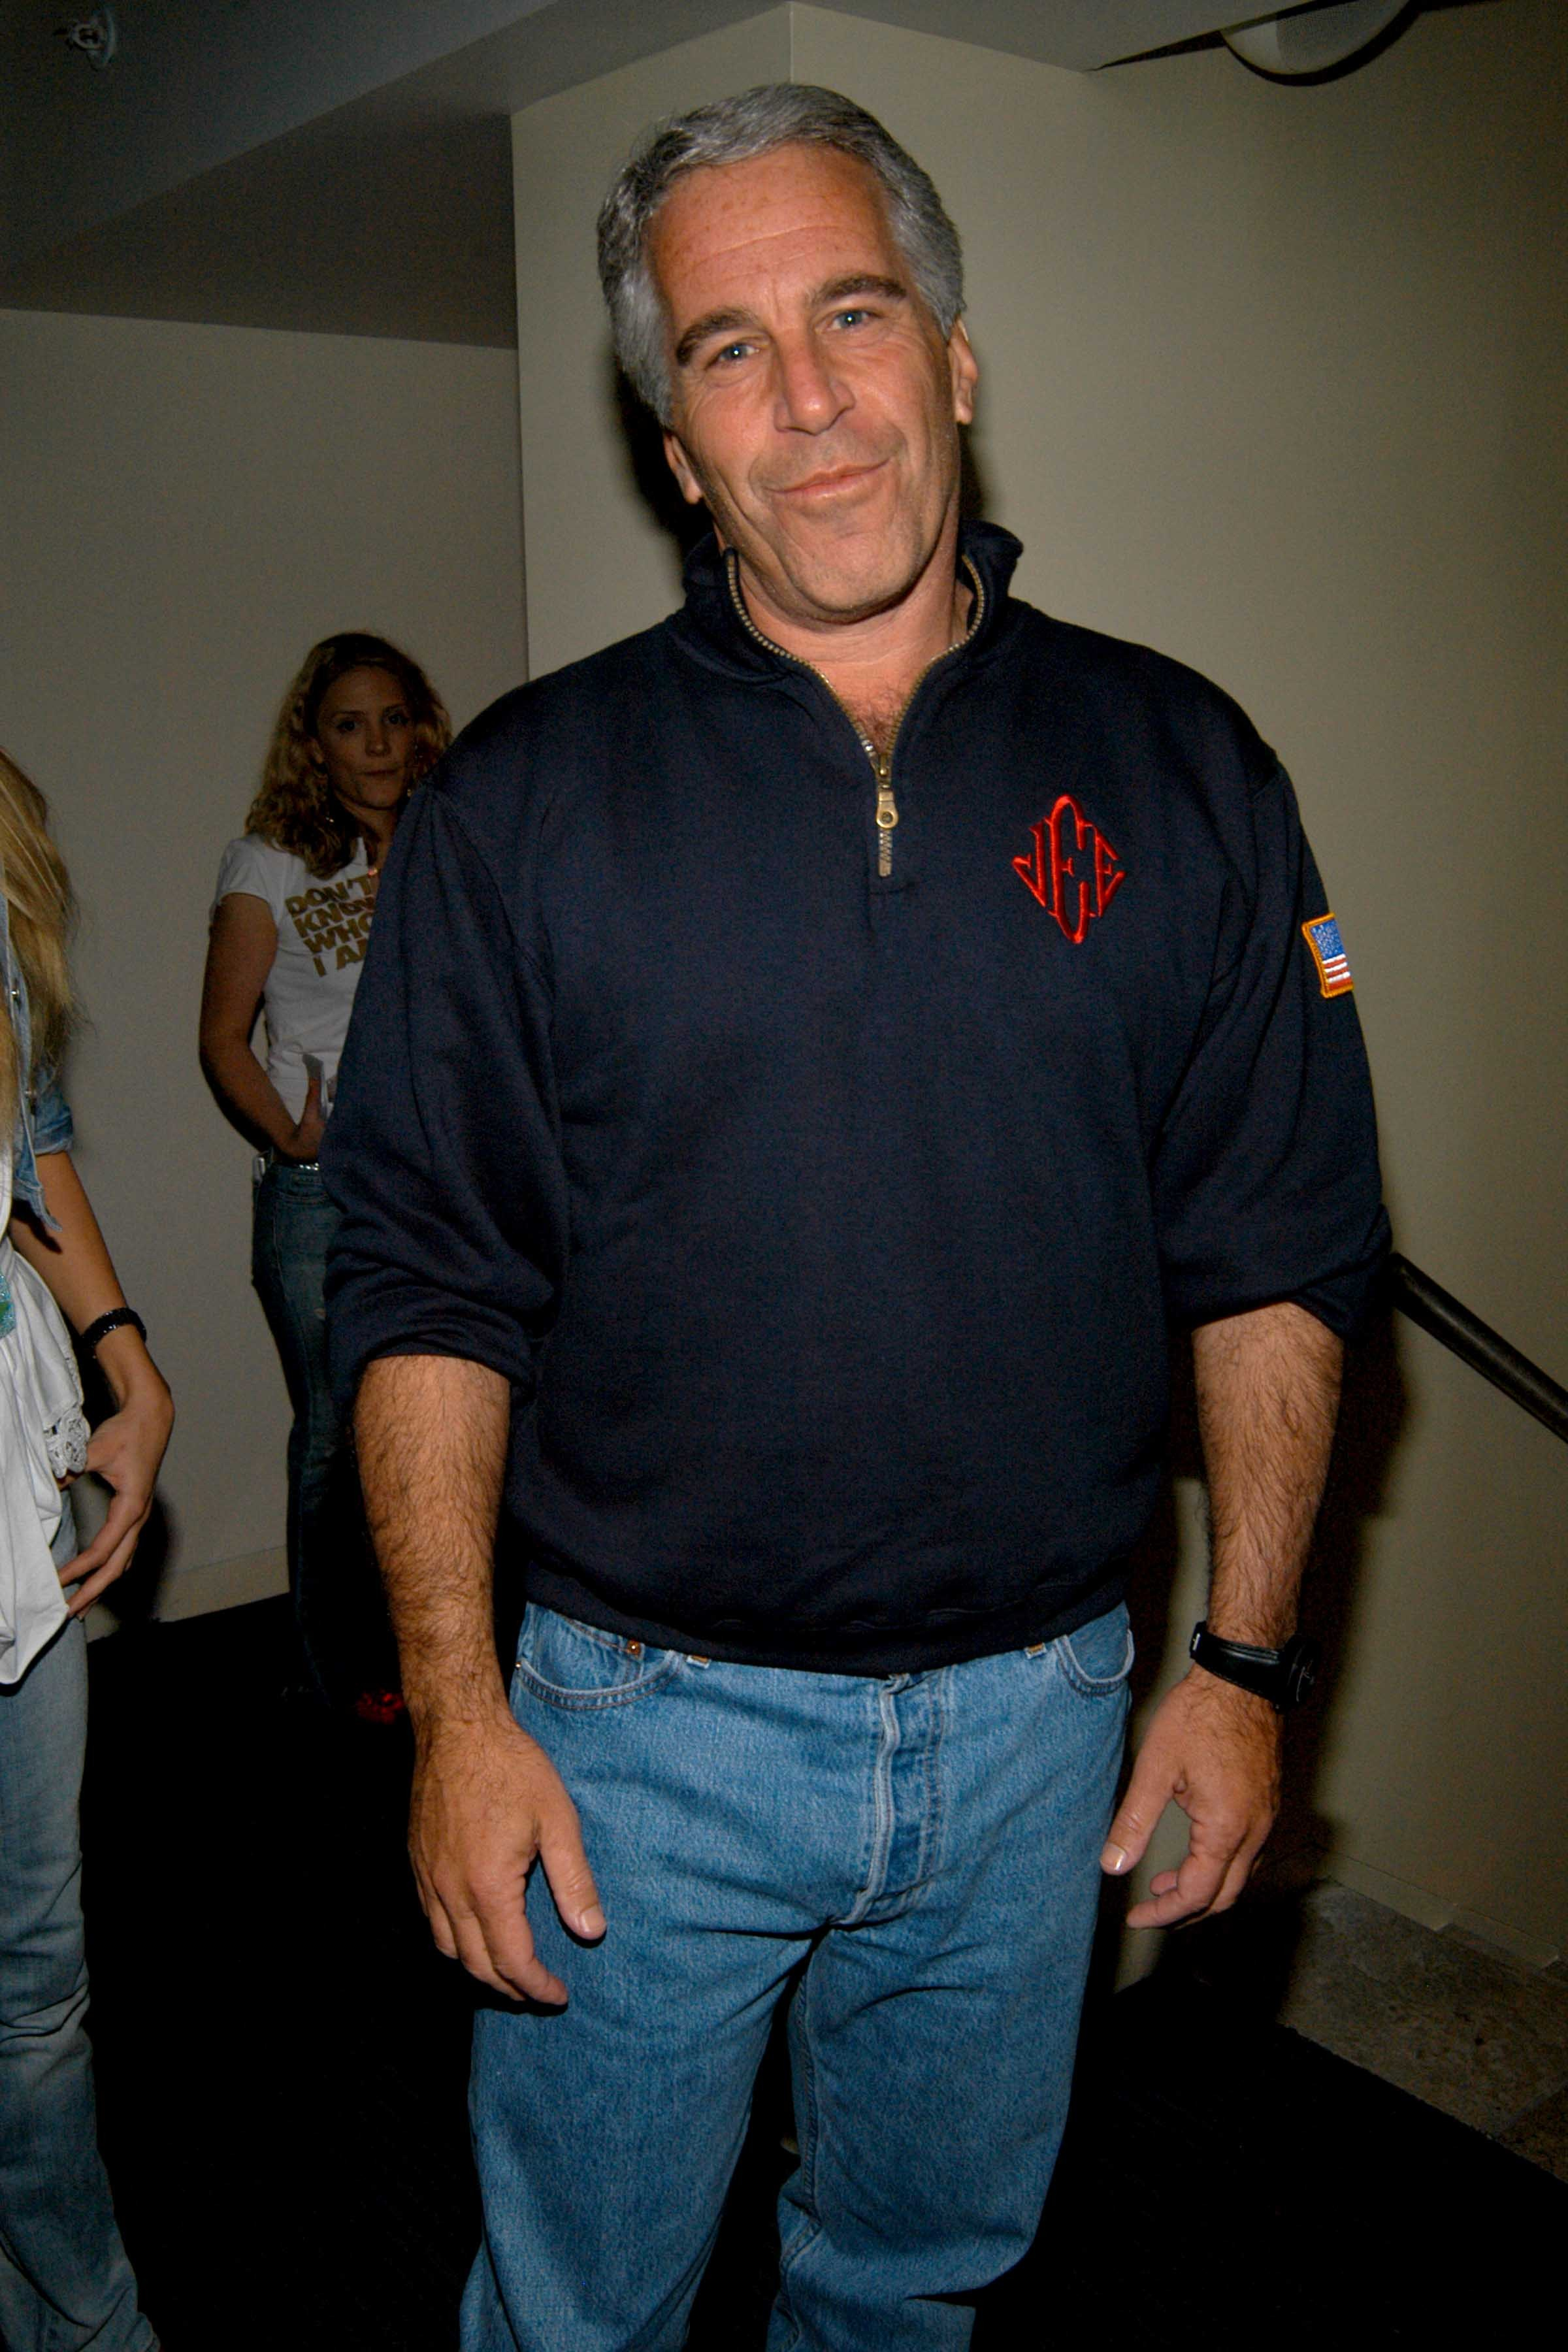 O empresário Jeffrey Epstein (Foto: Getty Images)